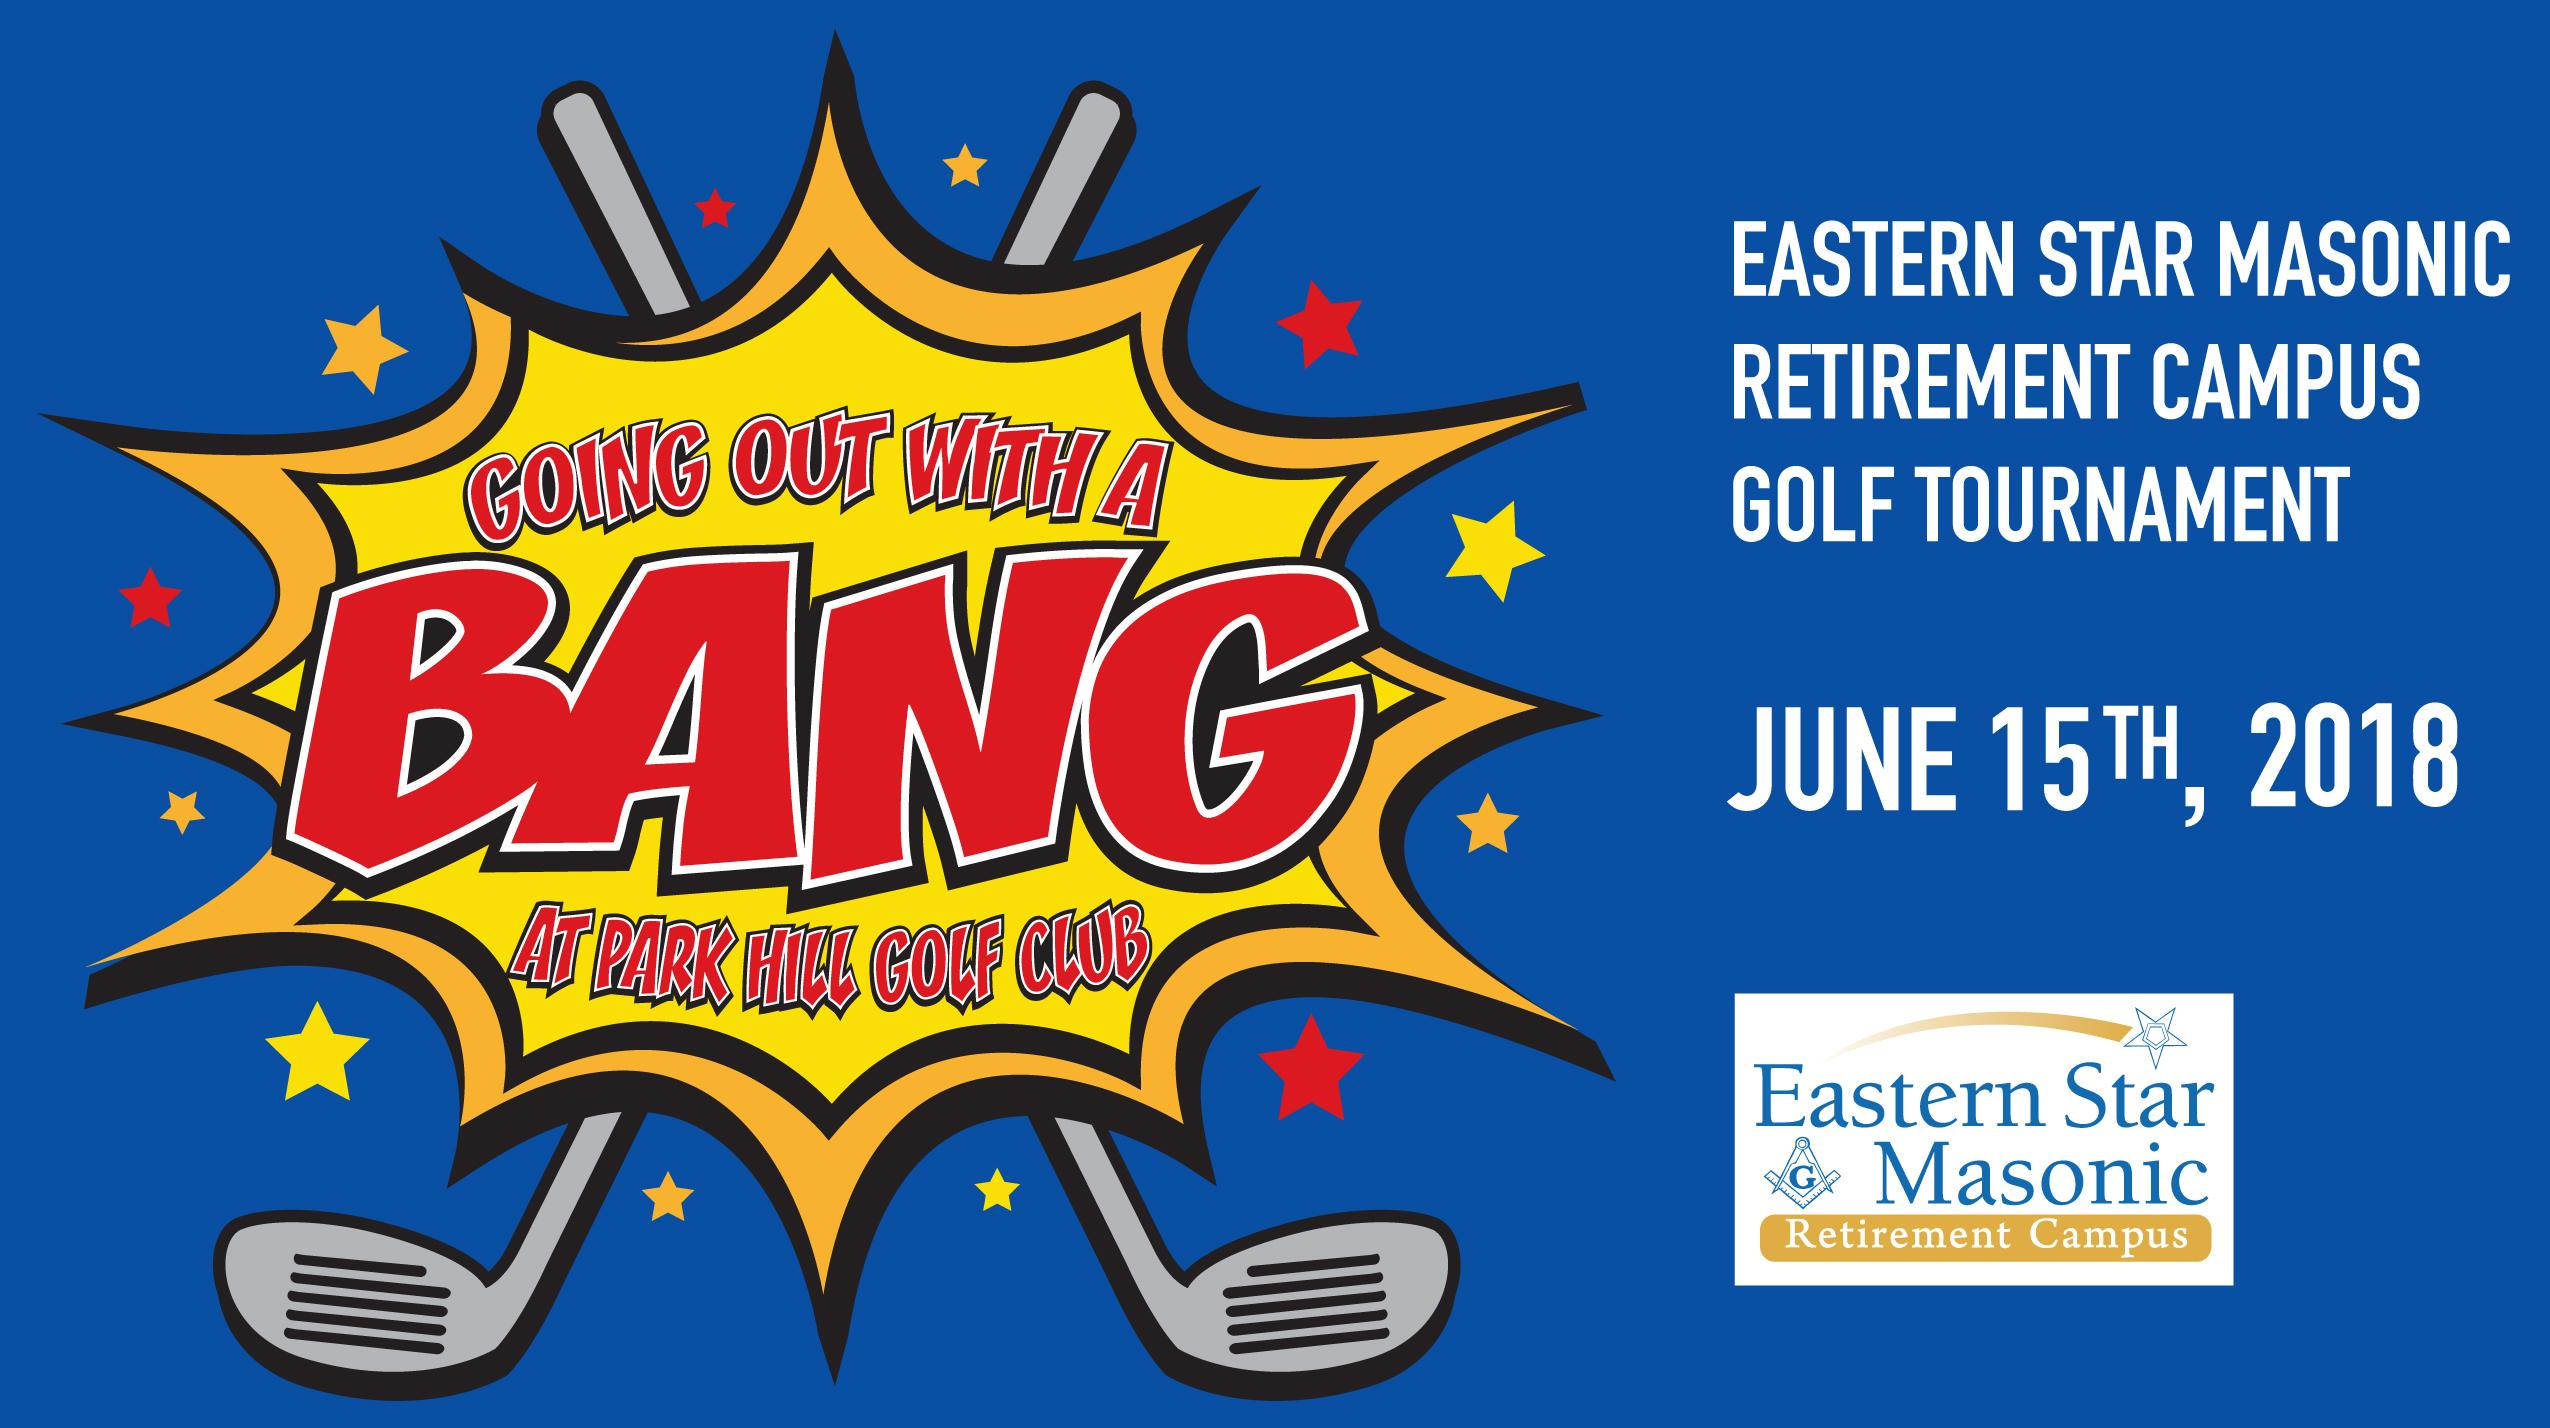 Eastern Star Masonic Retirement Campus Annual Golf Tournament